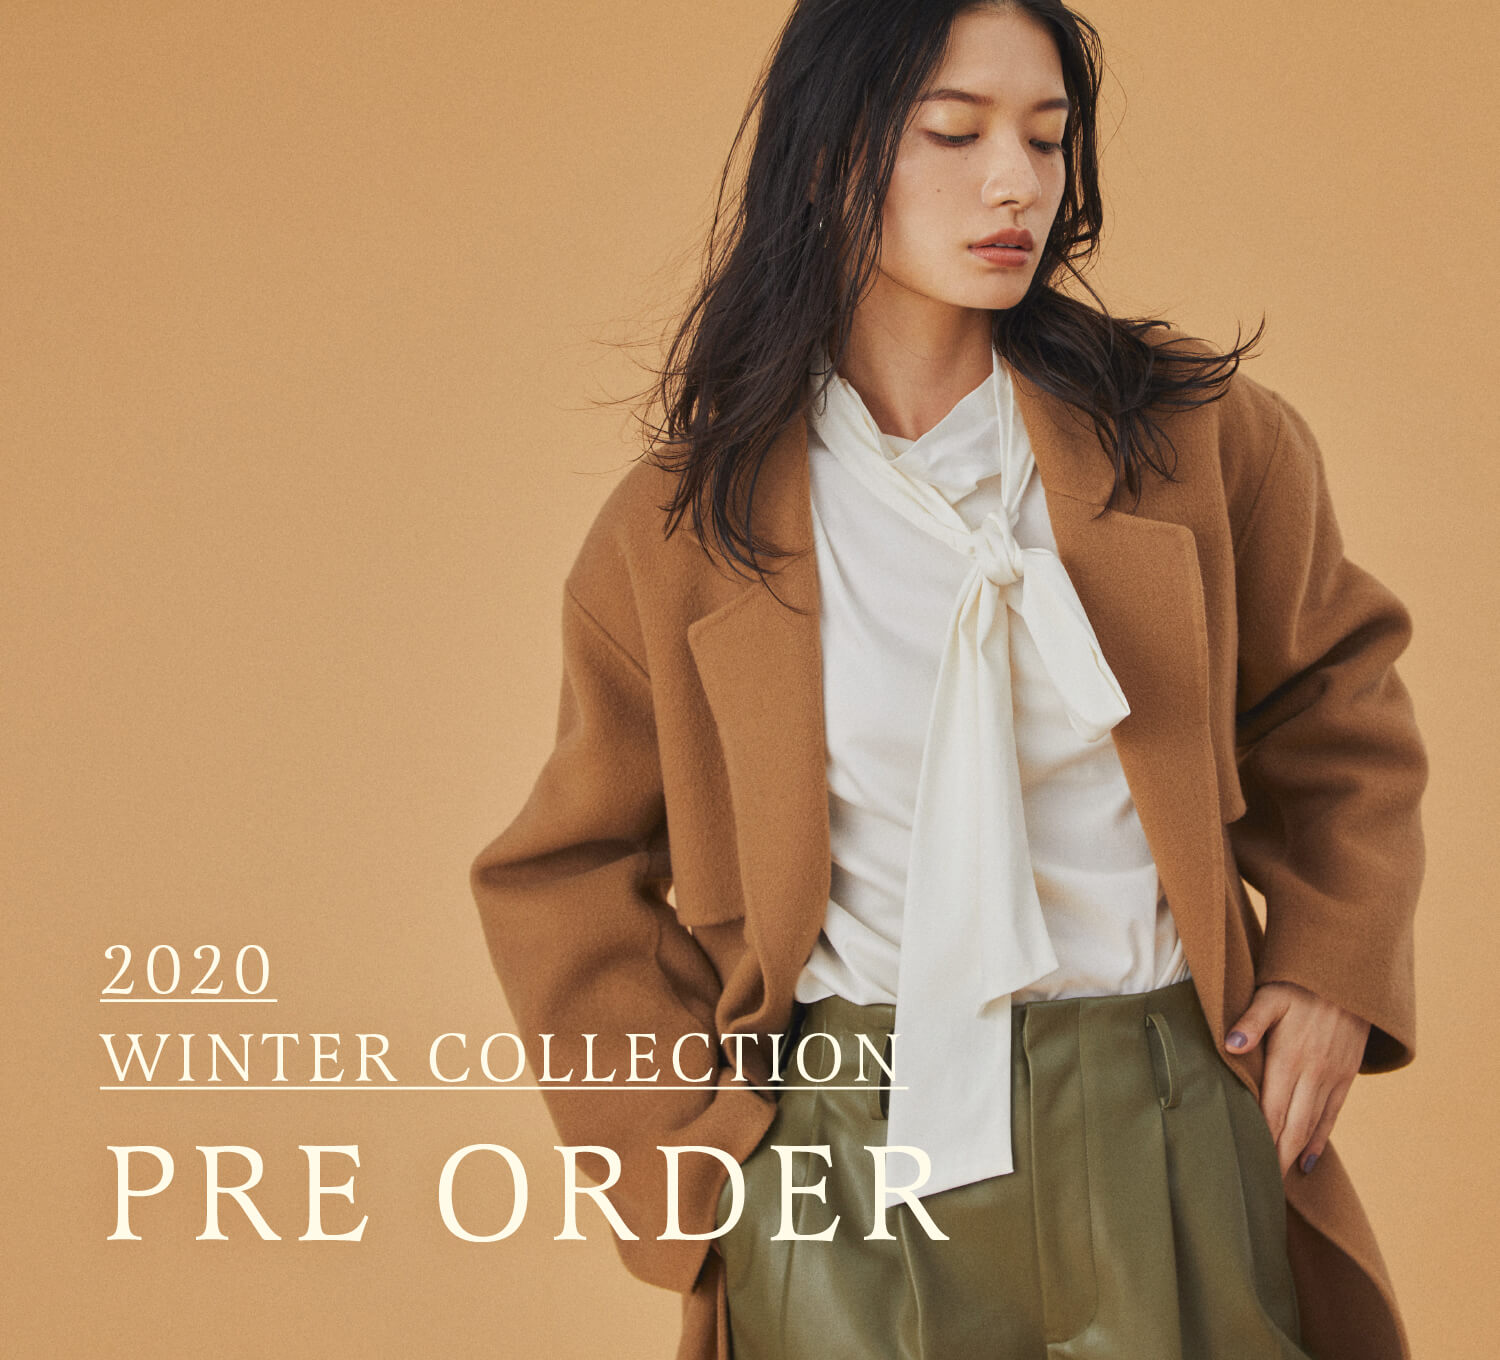 2020 WINTER COLLECTION PRE ORDER